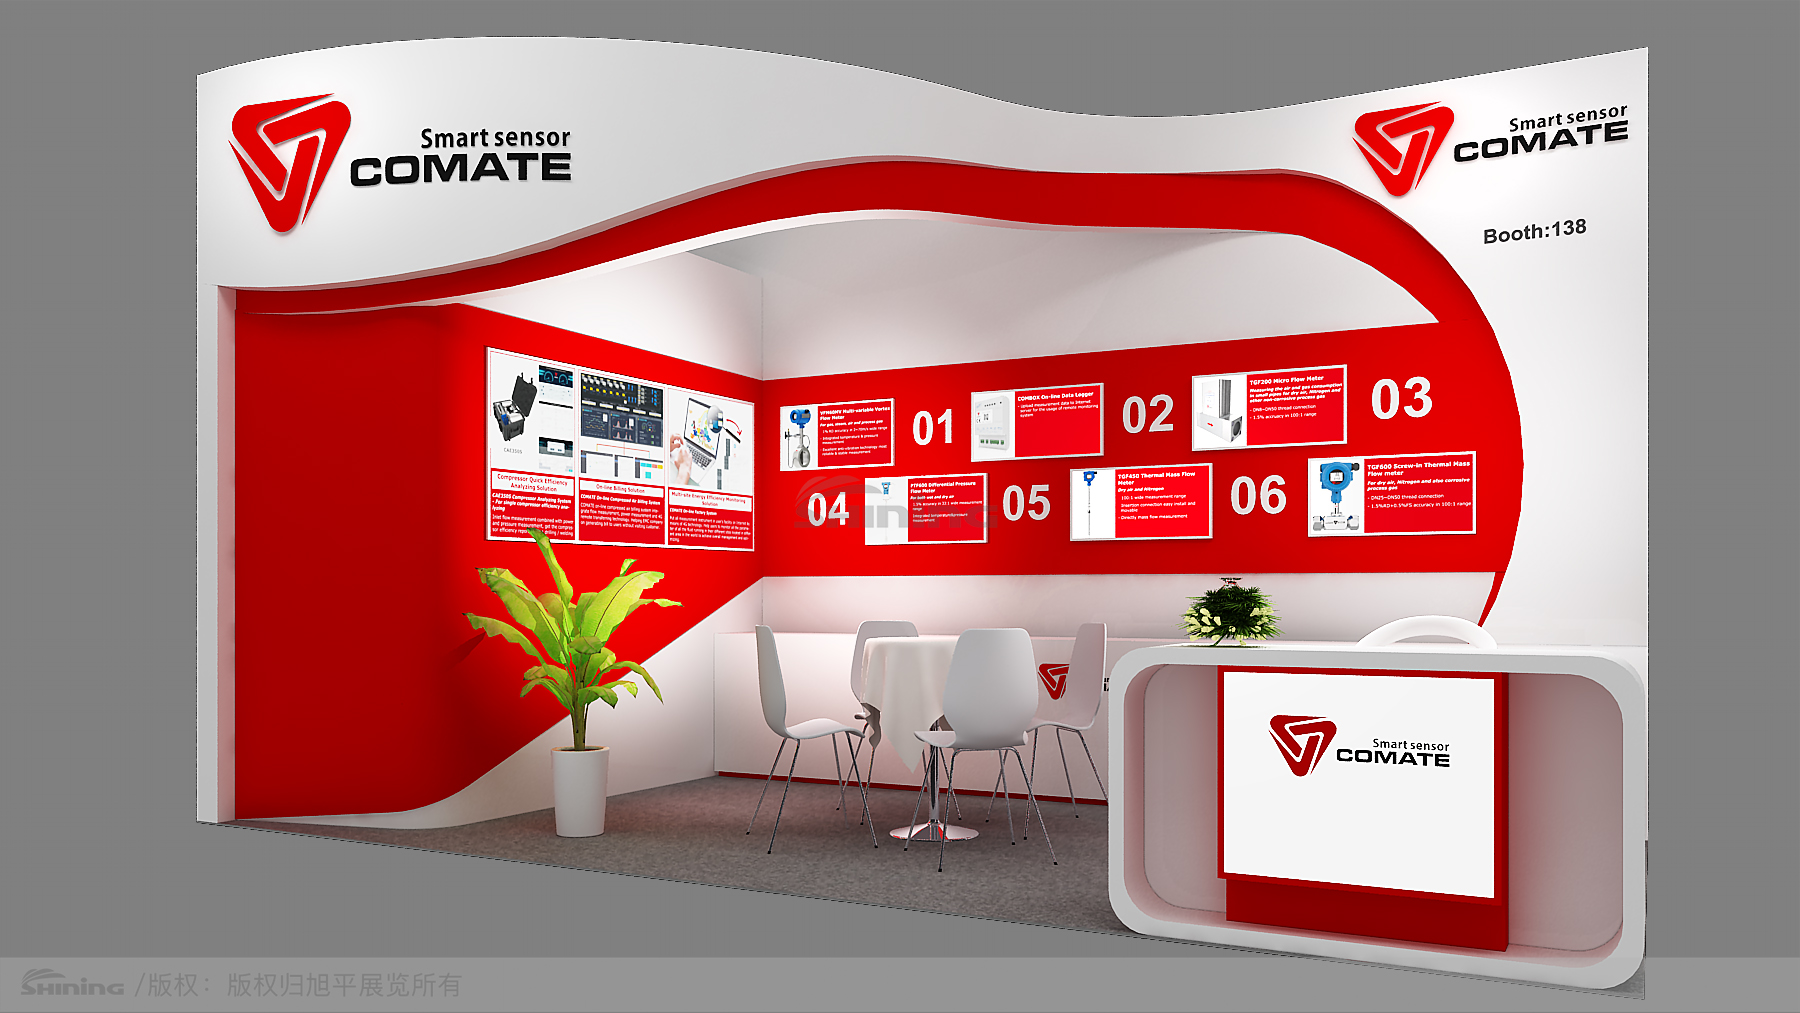 COMATE Stand 138